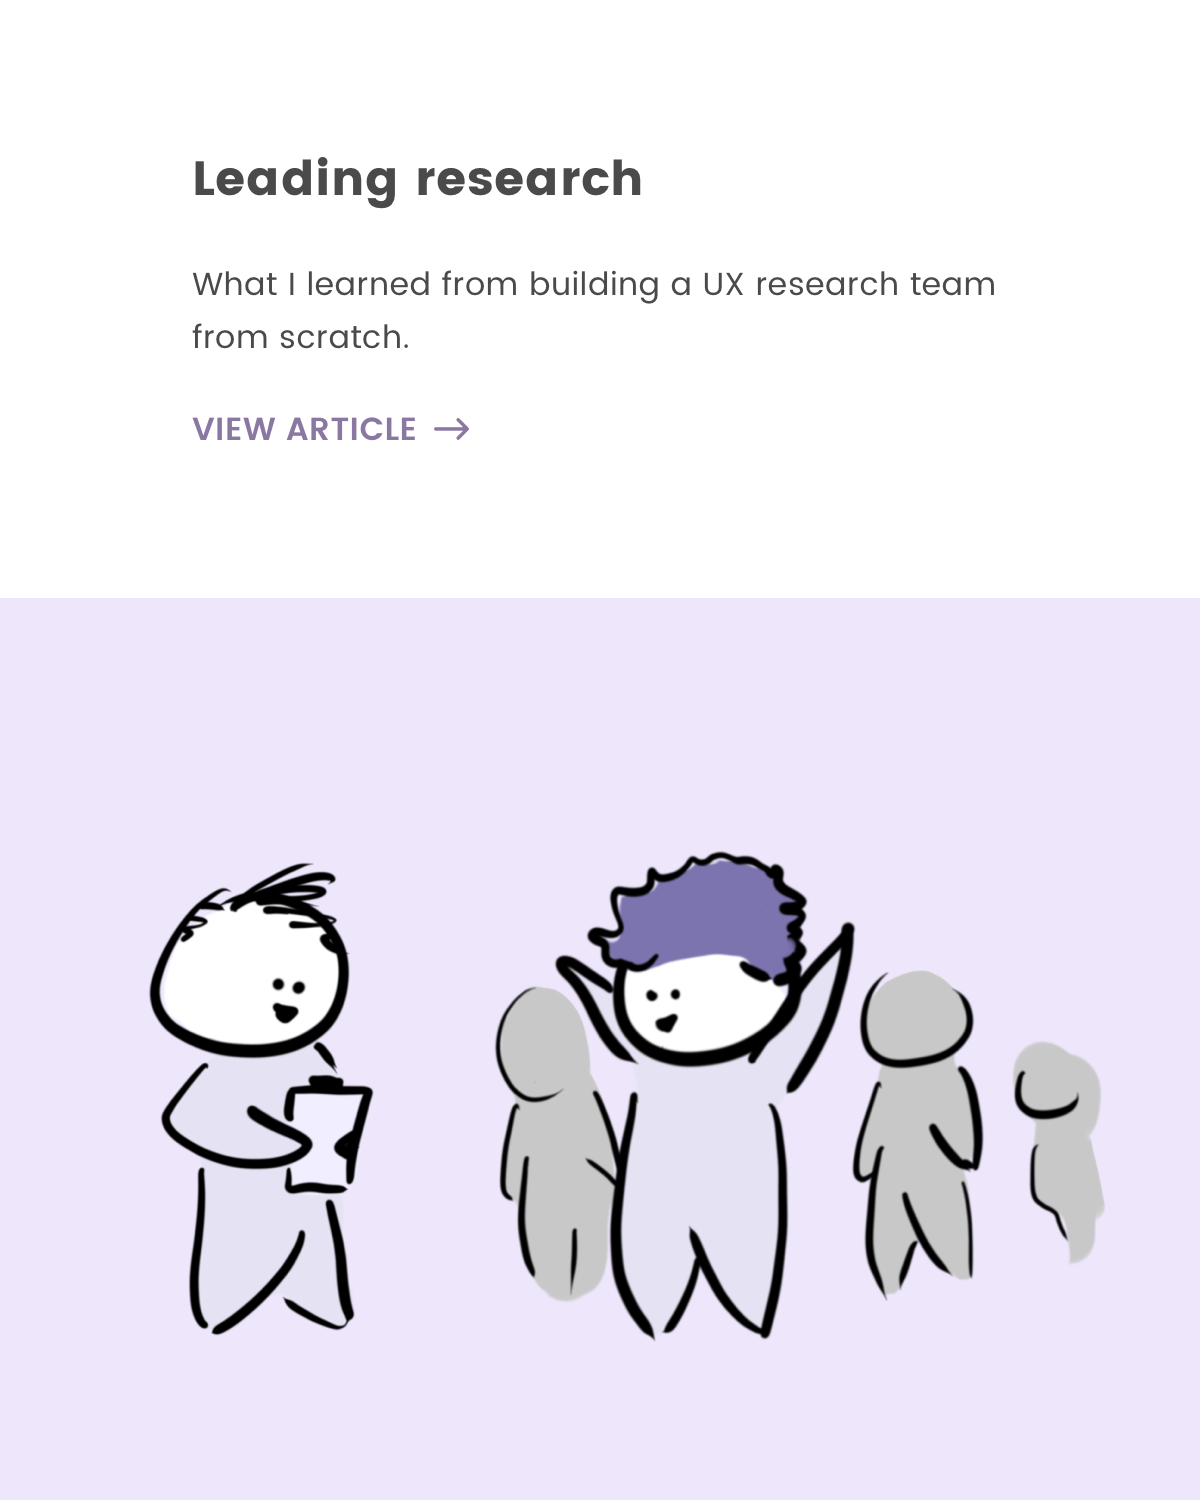 What I learned from building a UX research team from scratch